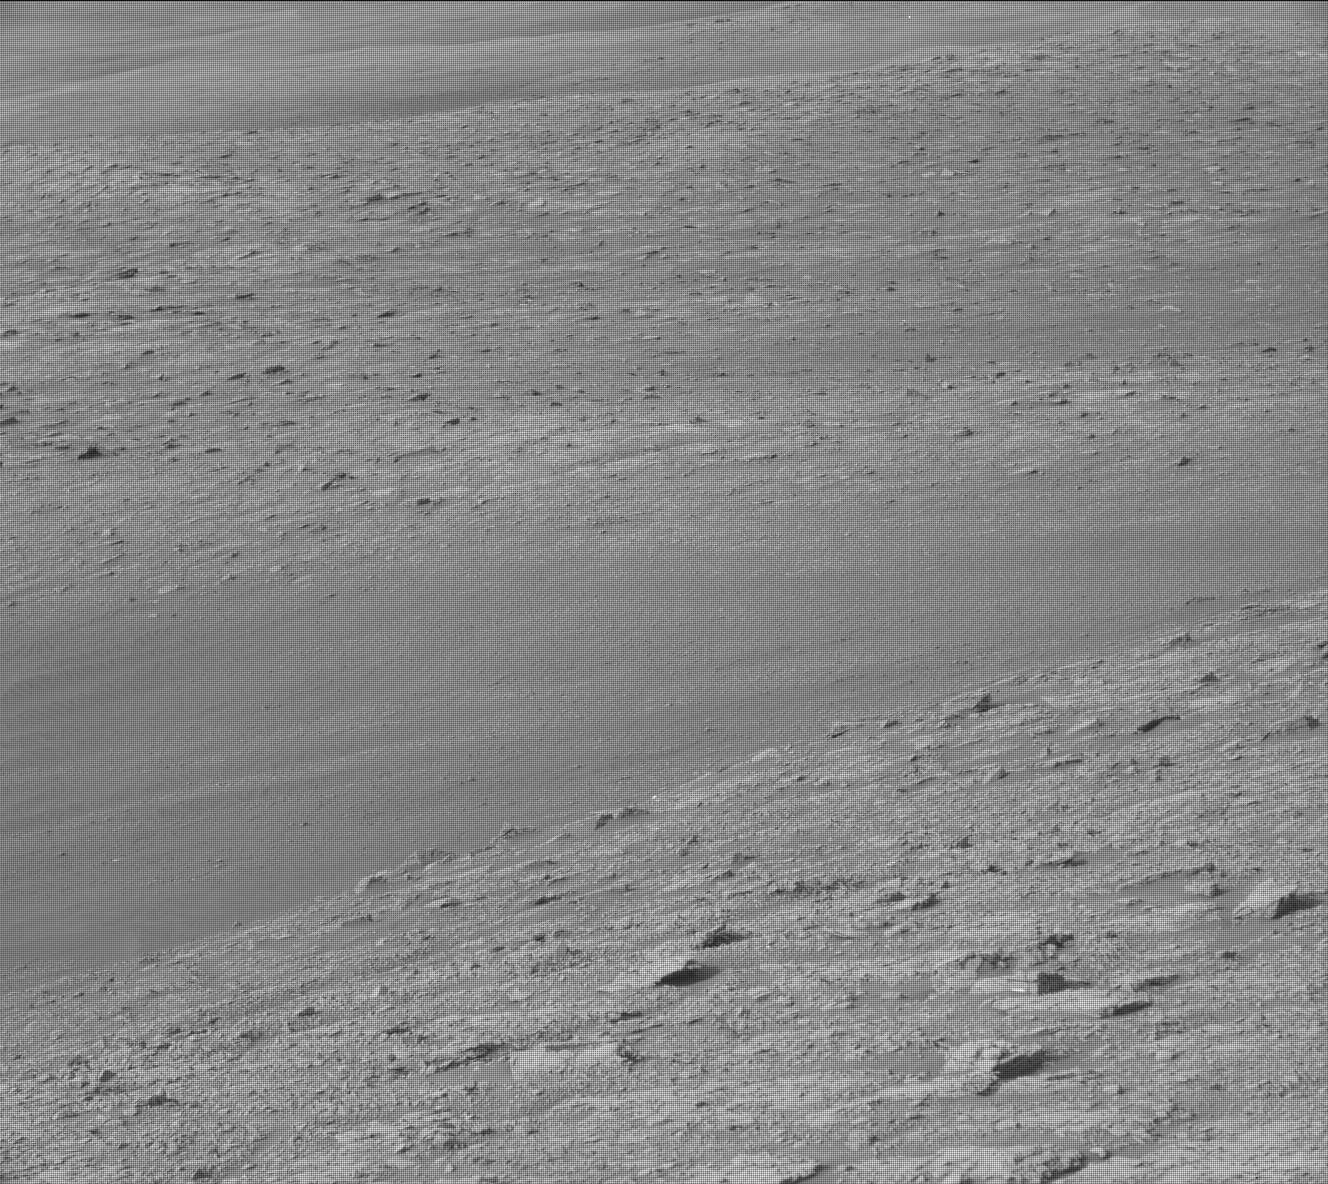 Nasa's Mars rover Curiosity acquired this image using its Mast Camera (Mastcam) on Sol 2820